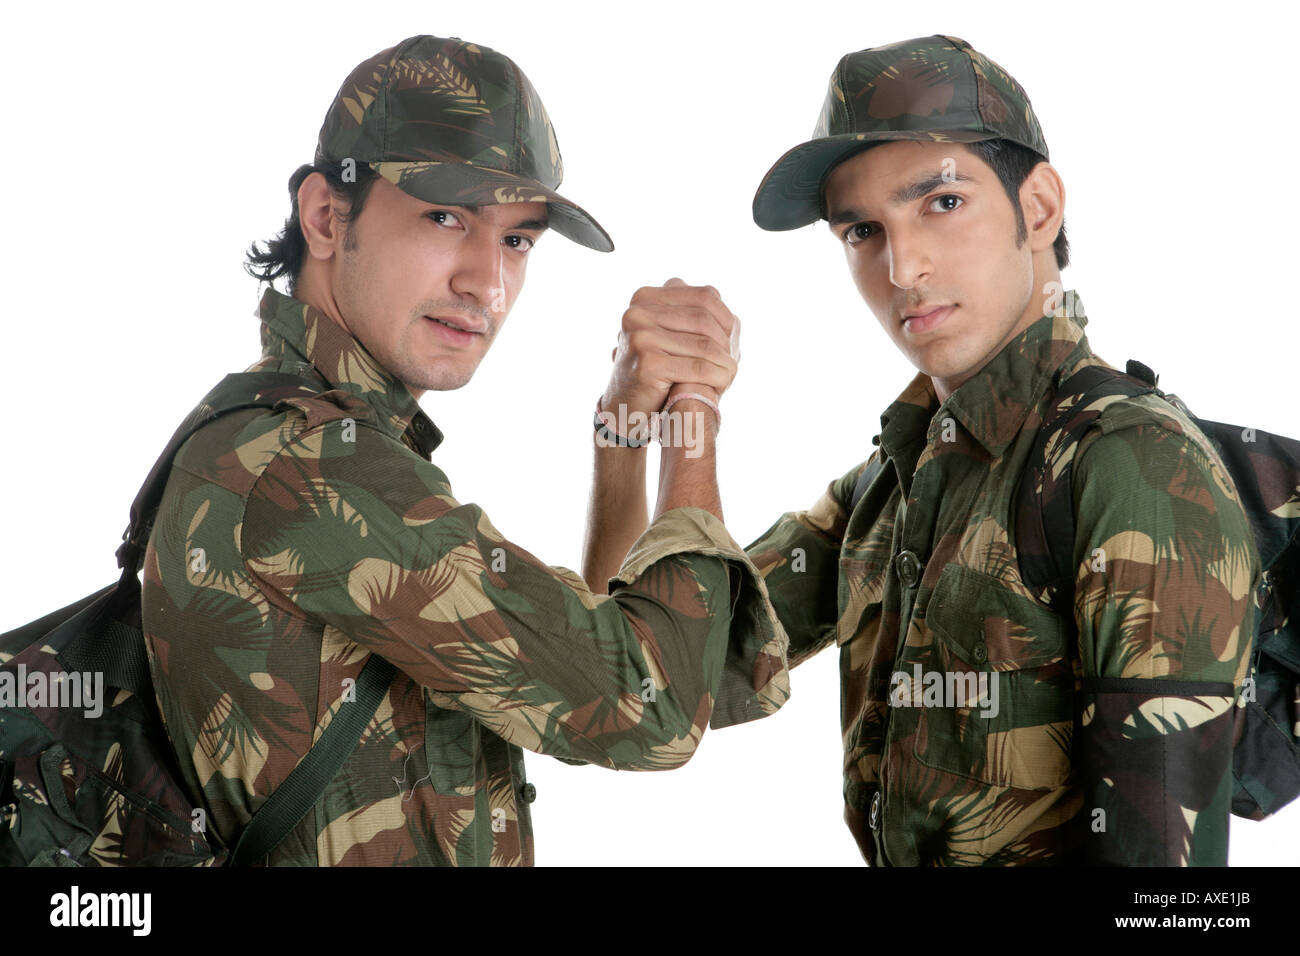 Military men and relationships